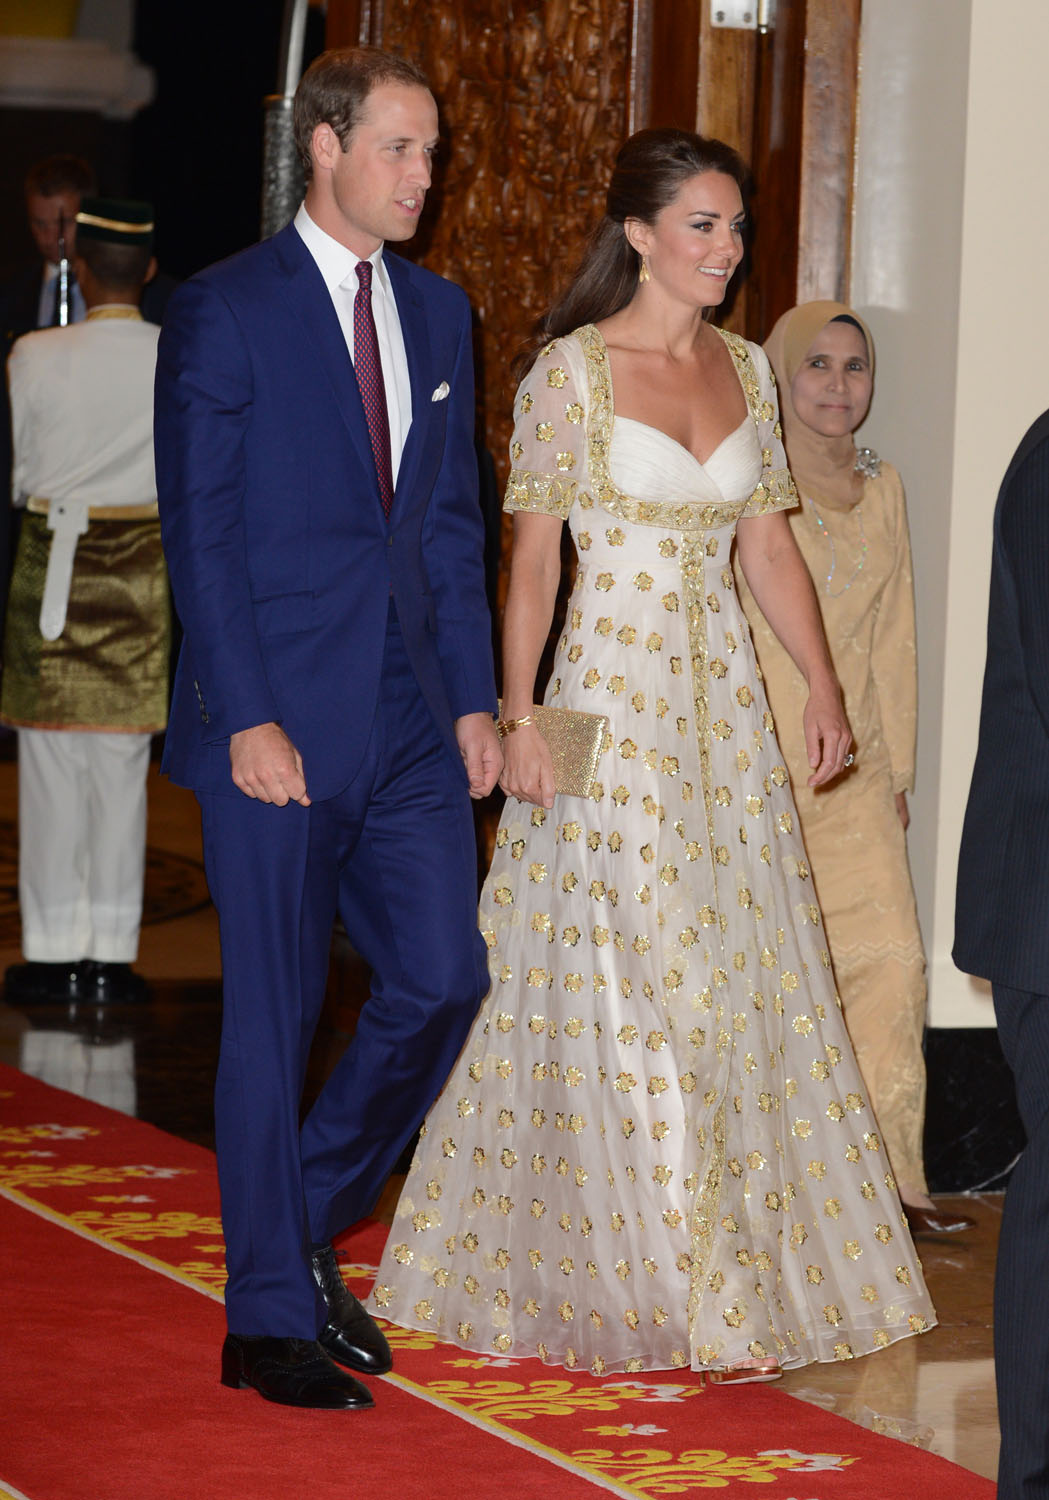 <strong>White and Gold</strong>Prince William, Duke of Cambridge and Catherine, Duchess of Cambridge attend an official dinner hosted by Malaysia's Head of State Sultan Abdul Halim Mu'adzam Shah of Kedah on September 13, 2012 in Kuala Lumpur, Malaysia.